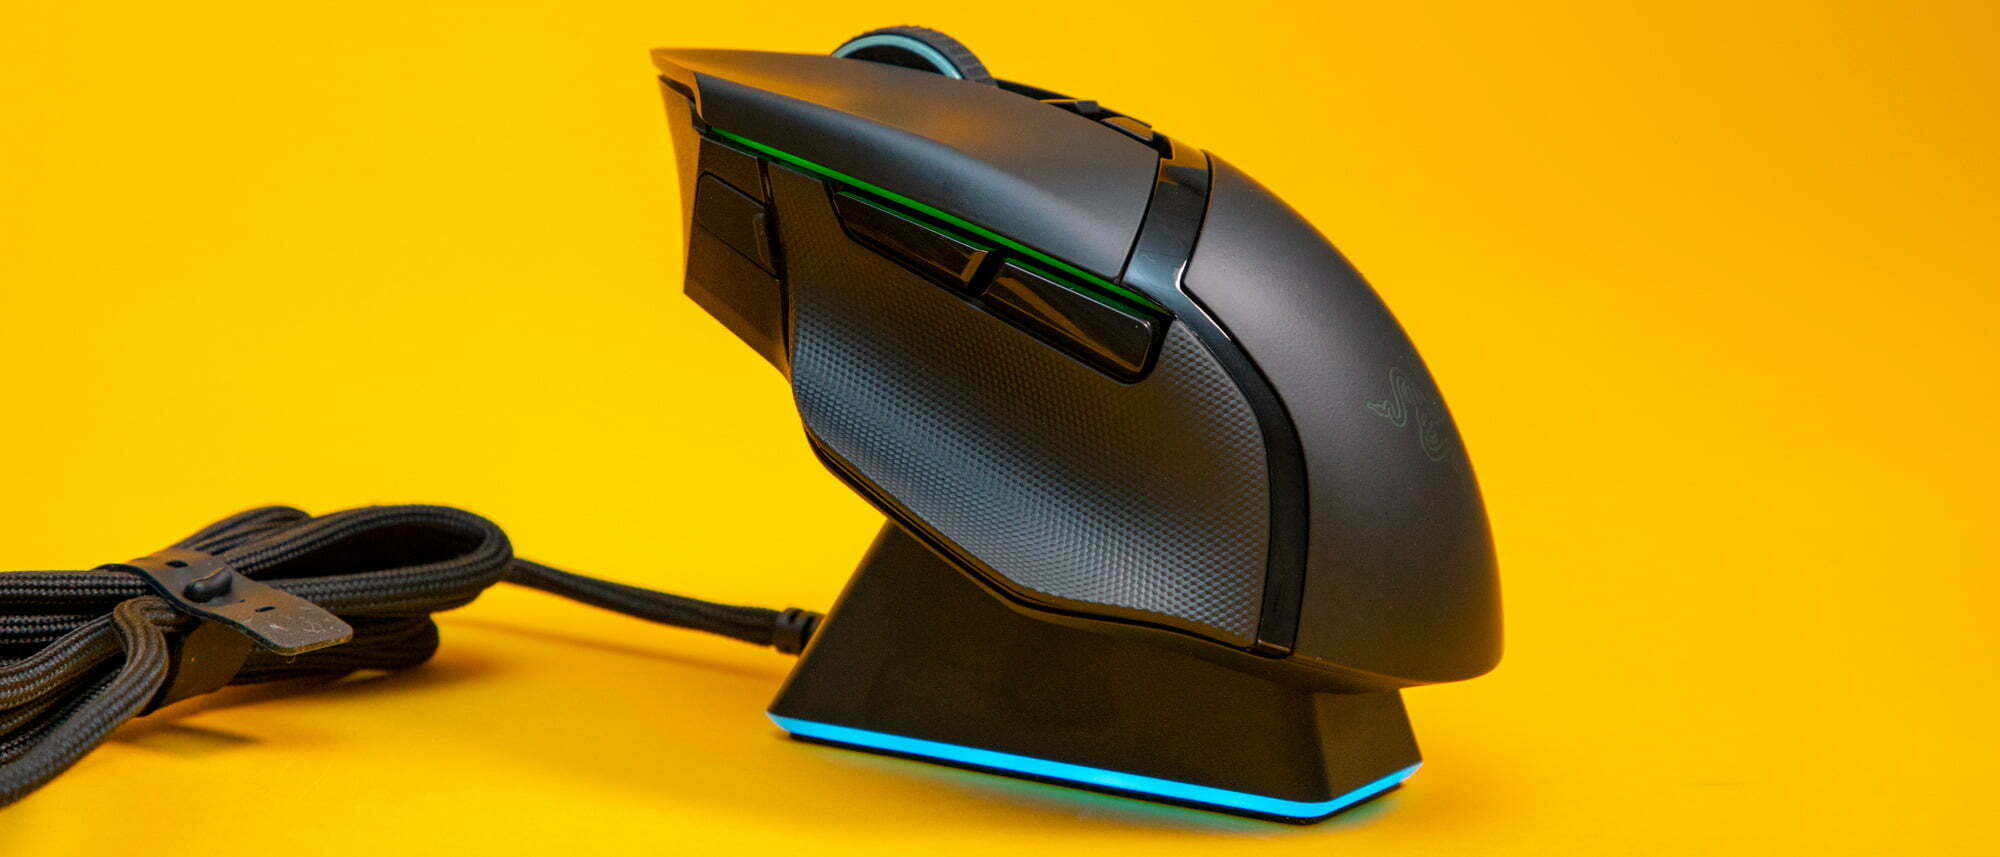 razer_basilisk_ultimate_mouse